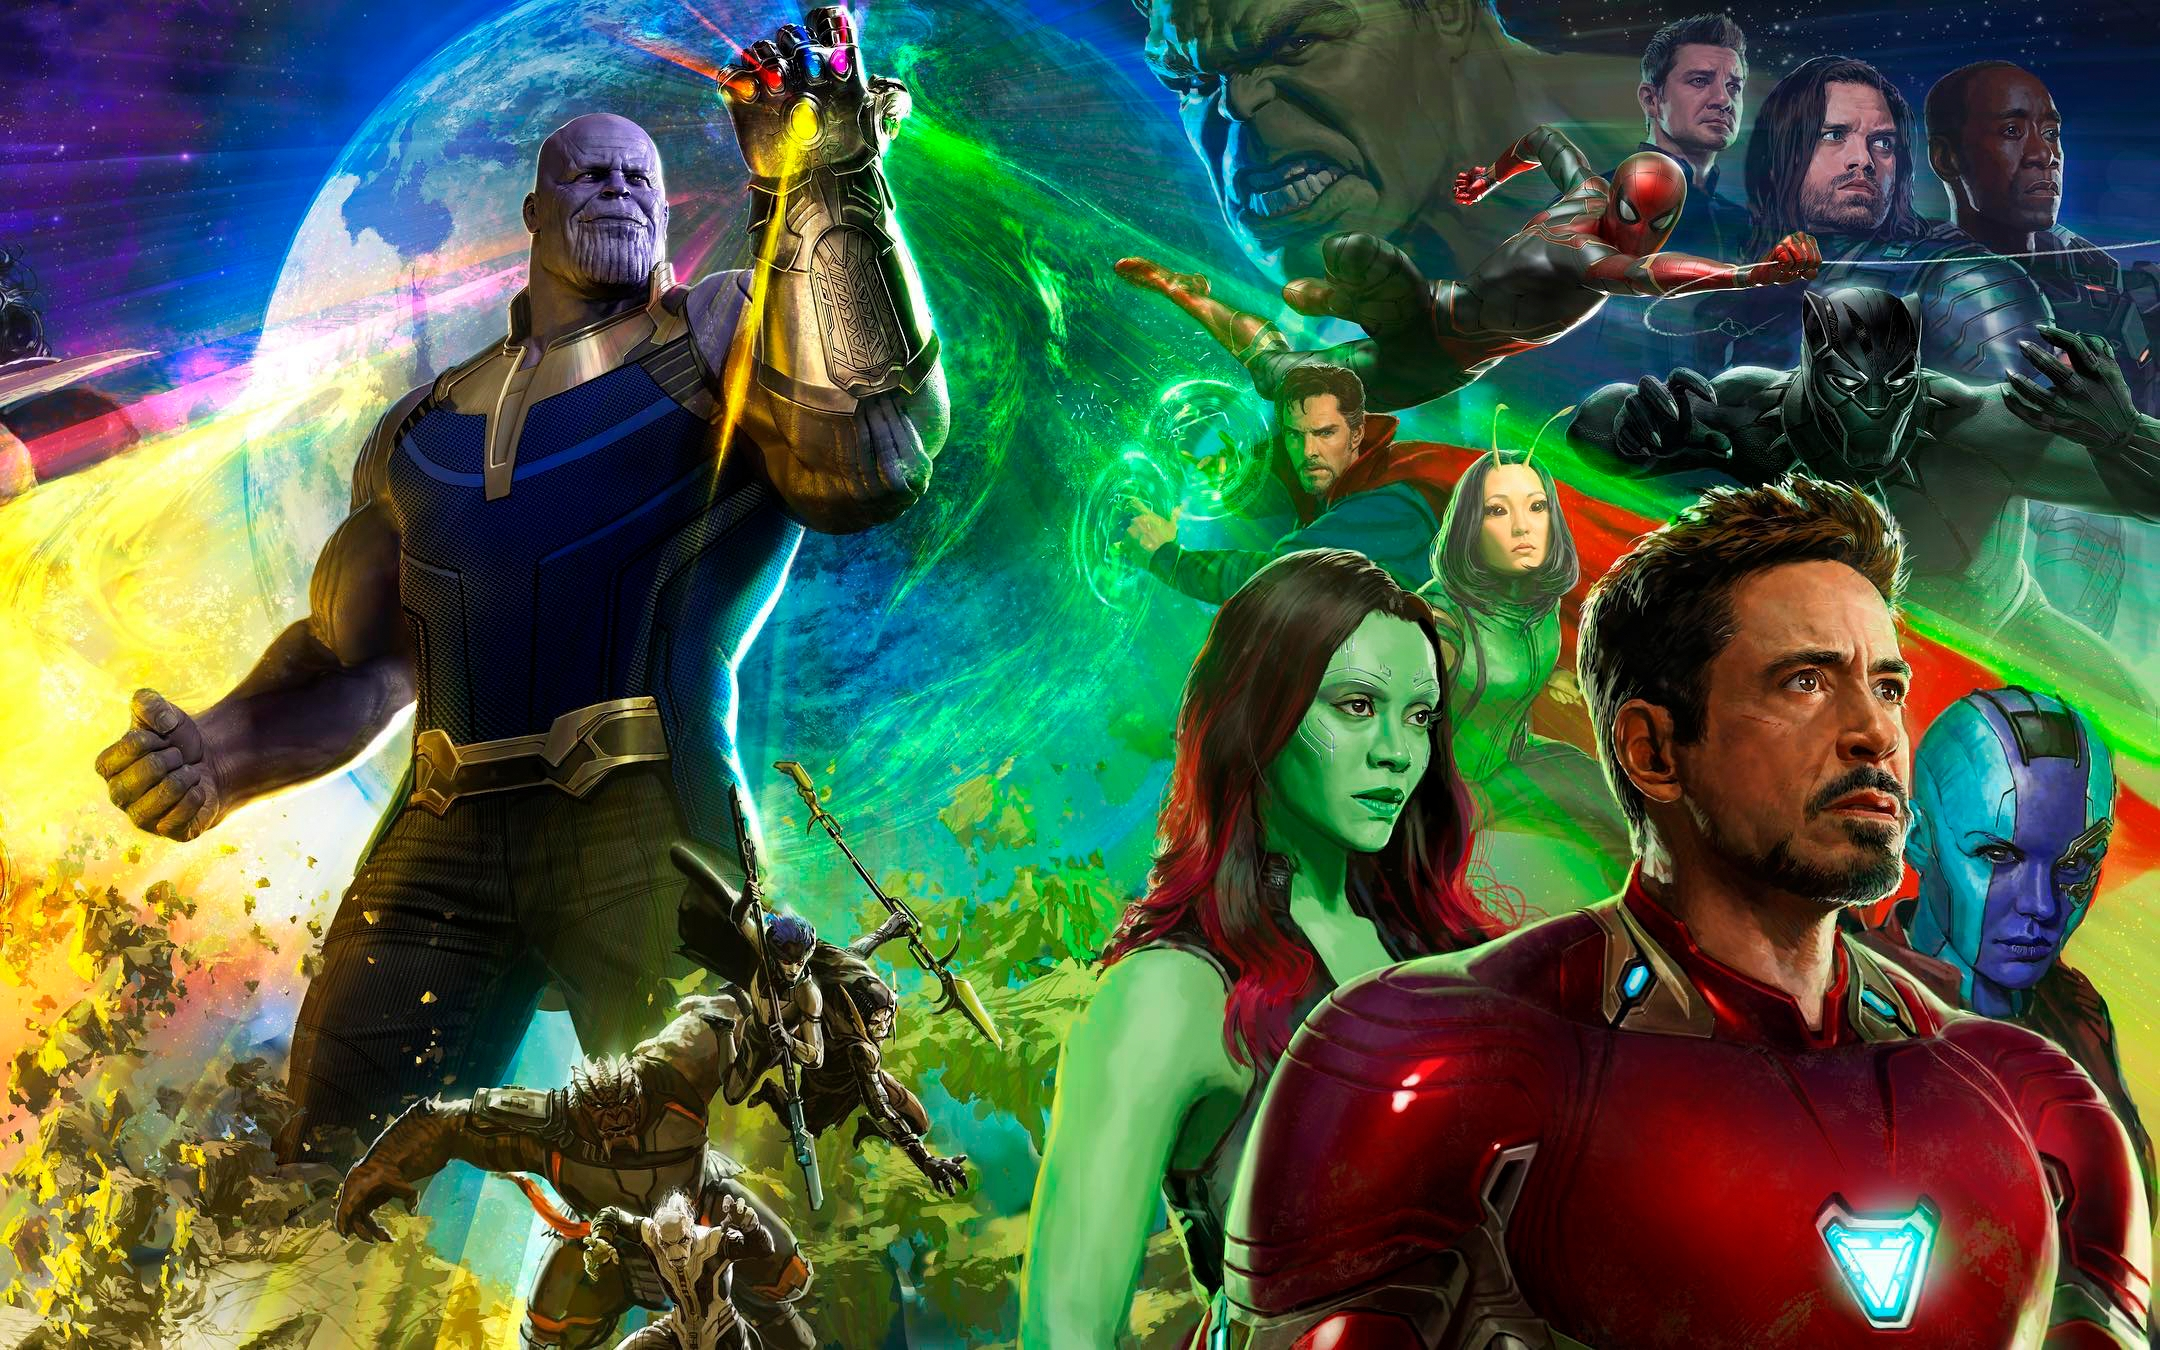 hd infinity war poster so far : marvelstudios